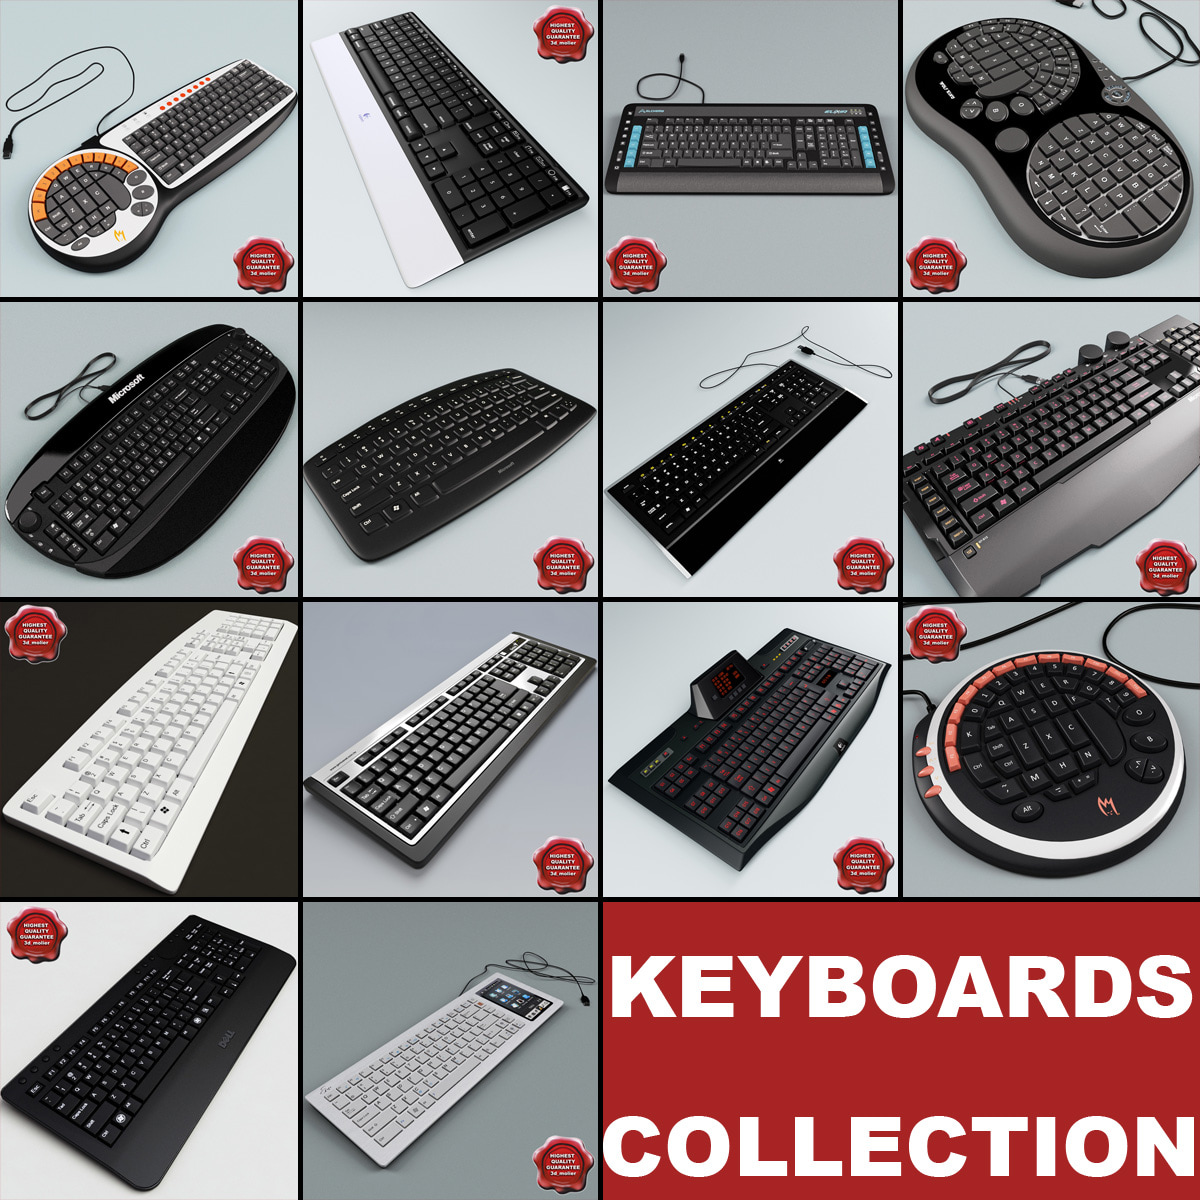 Keyboards_Collection_V7_00.jpg